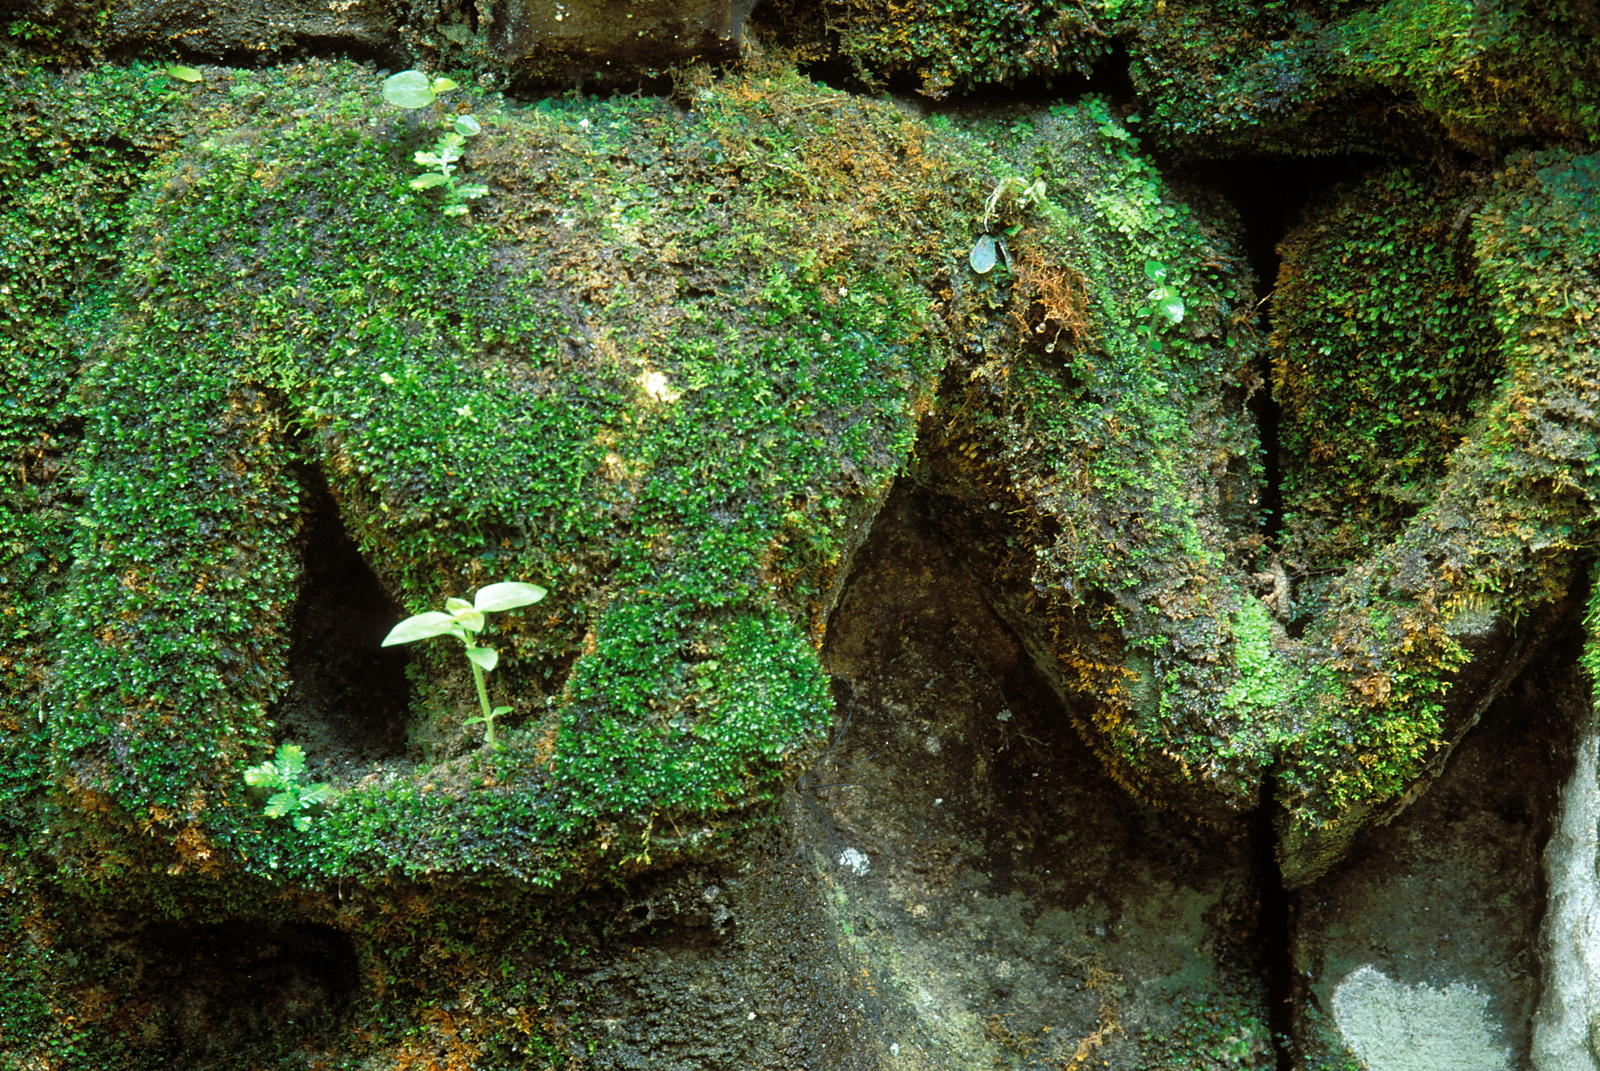 Moss-covered apsara